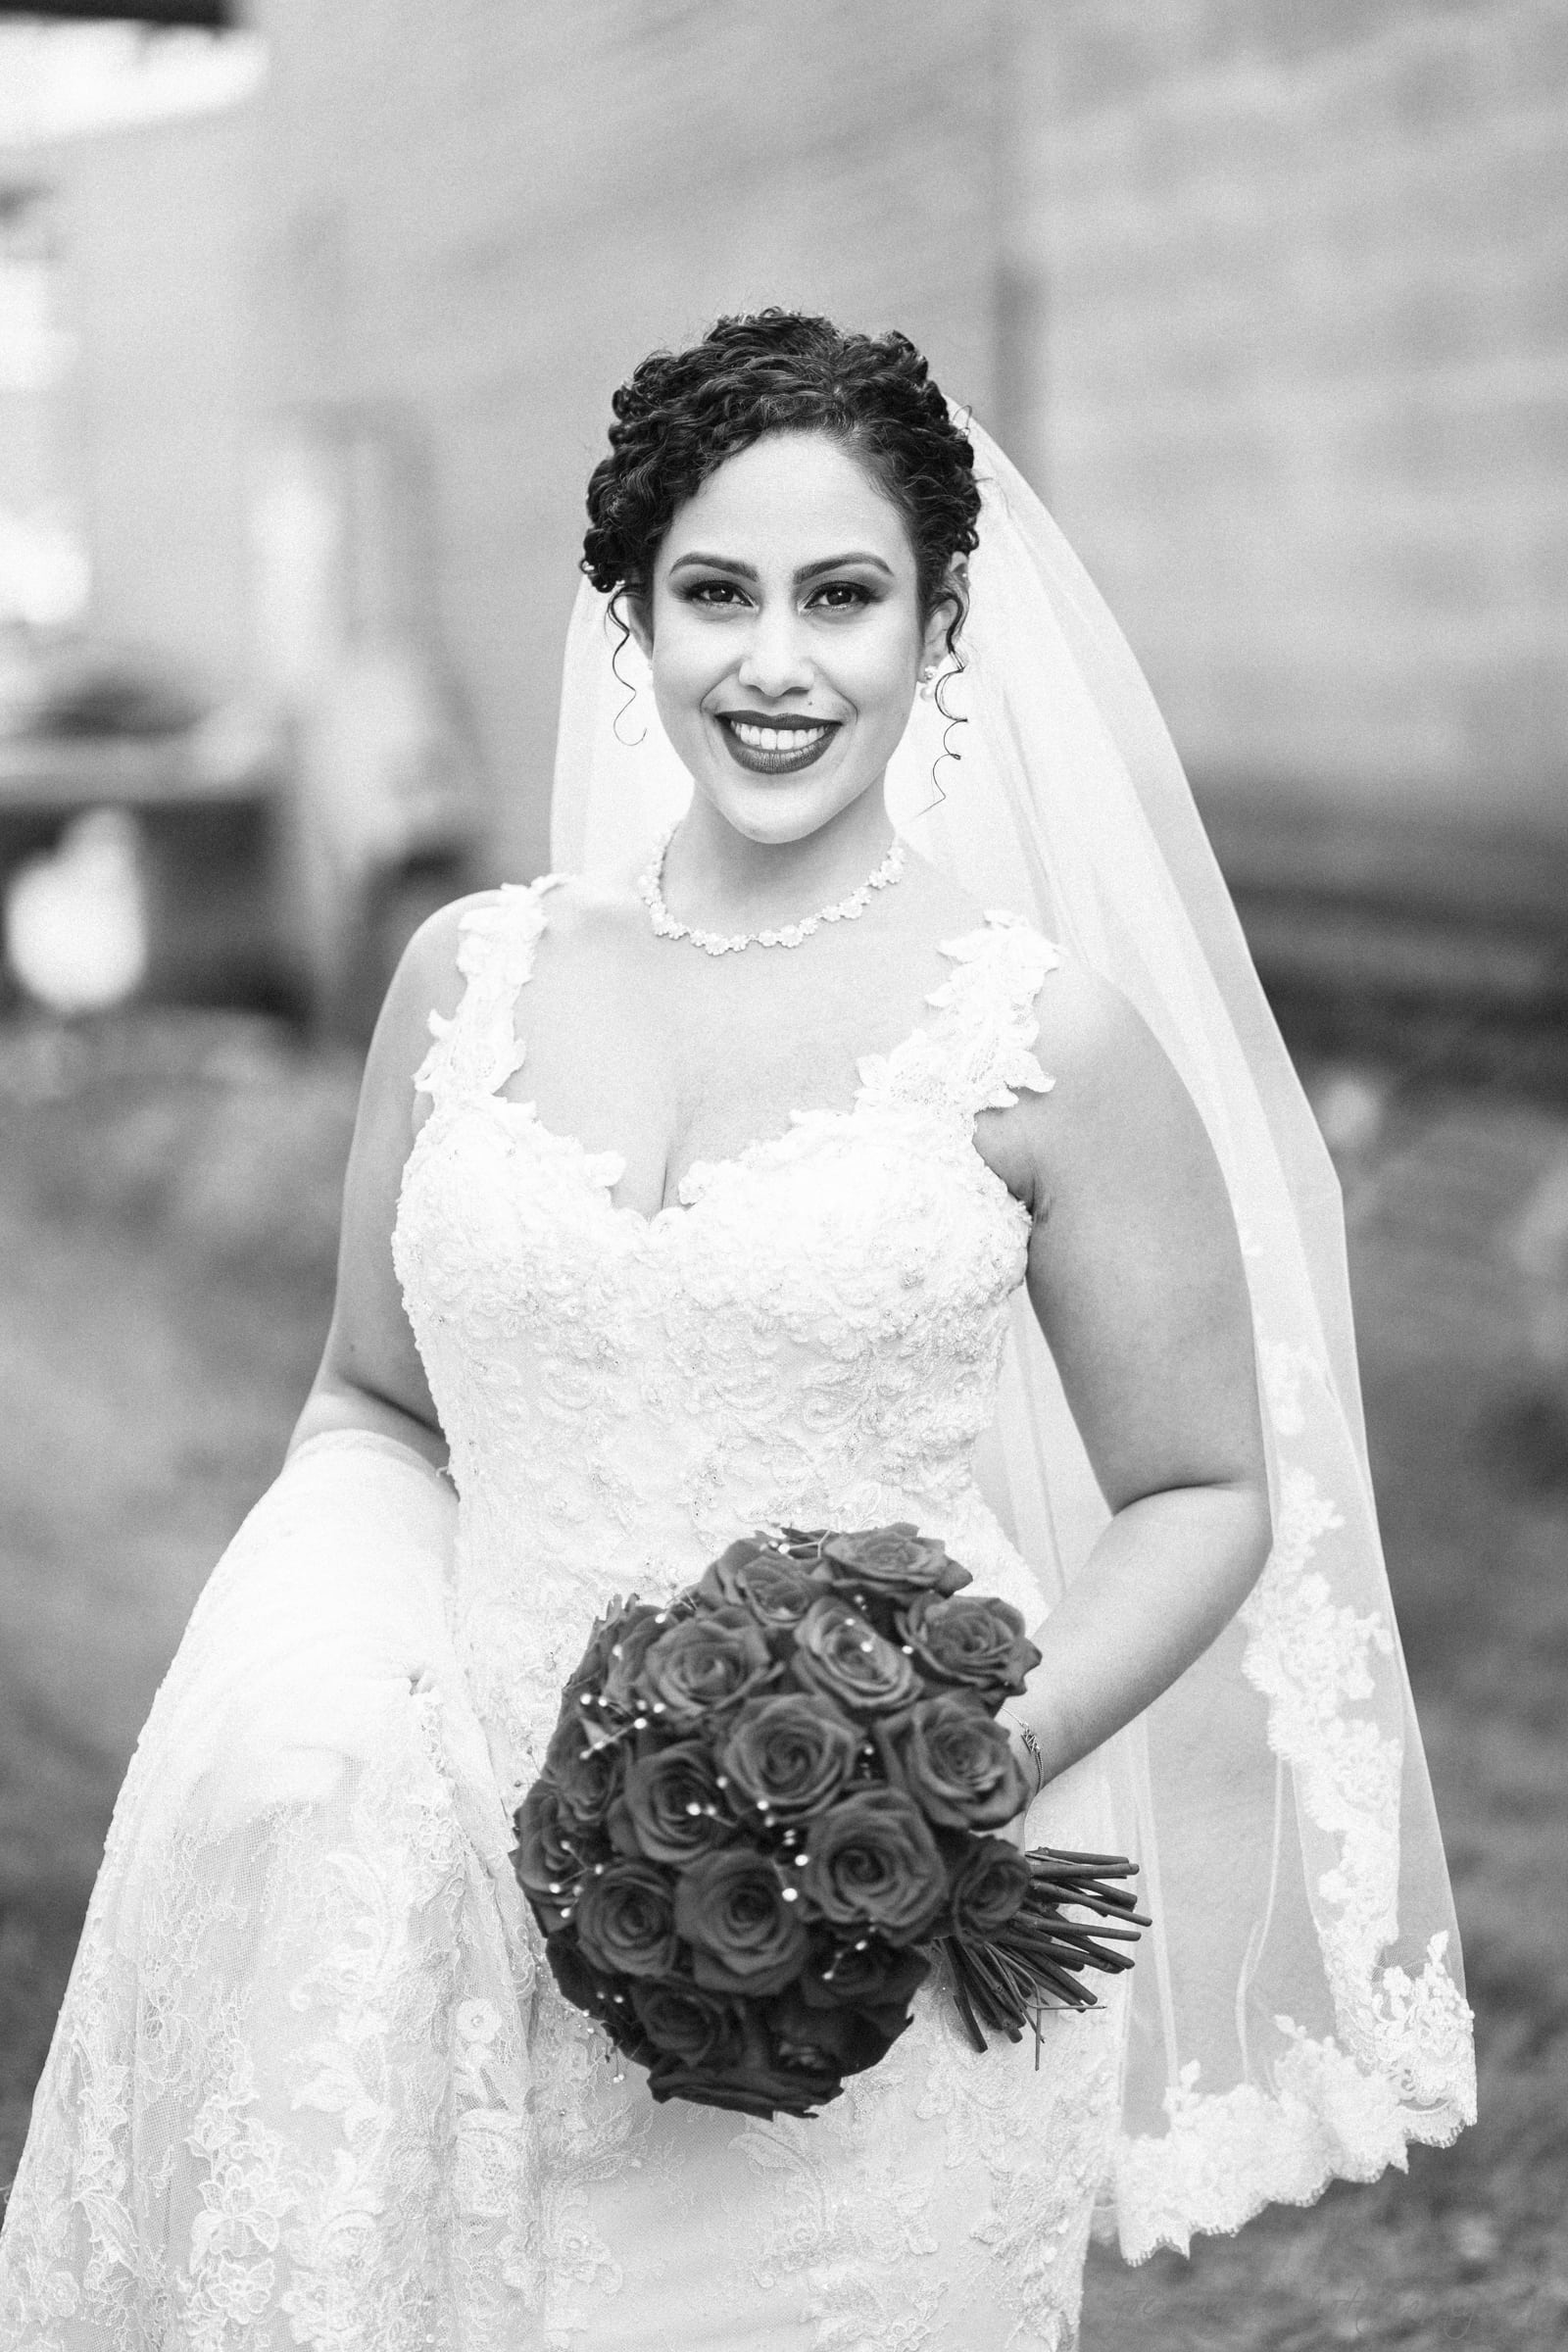 melrose knitting mill raleigh wedding photographer melanie anthony 41